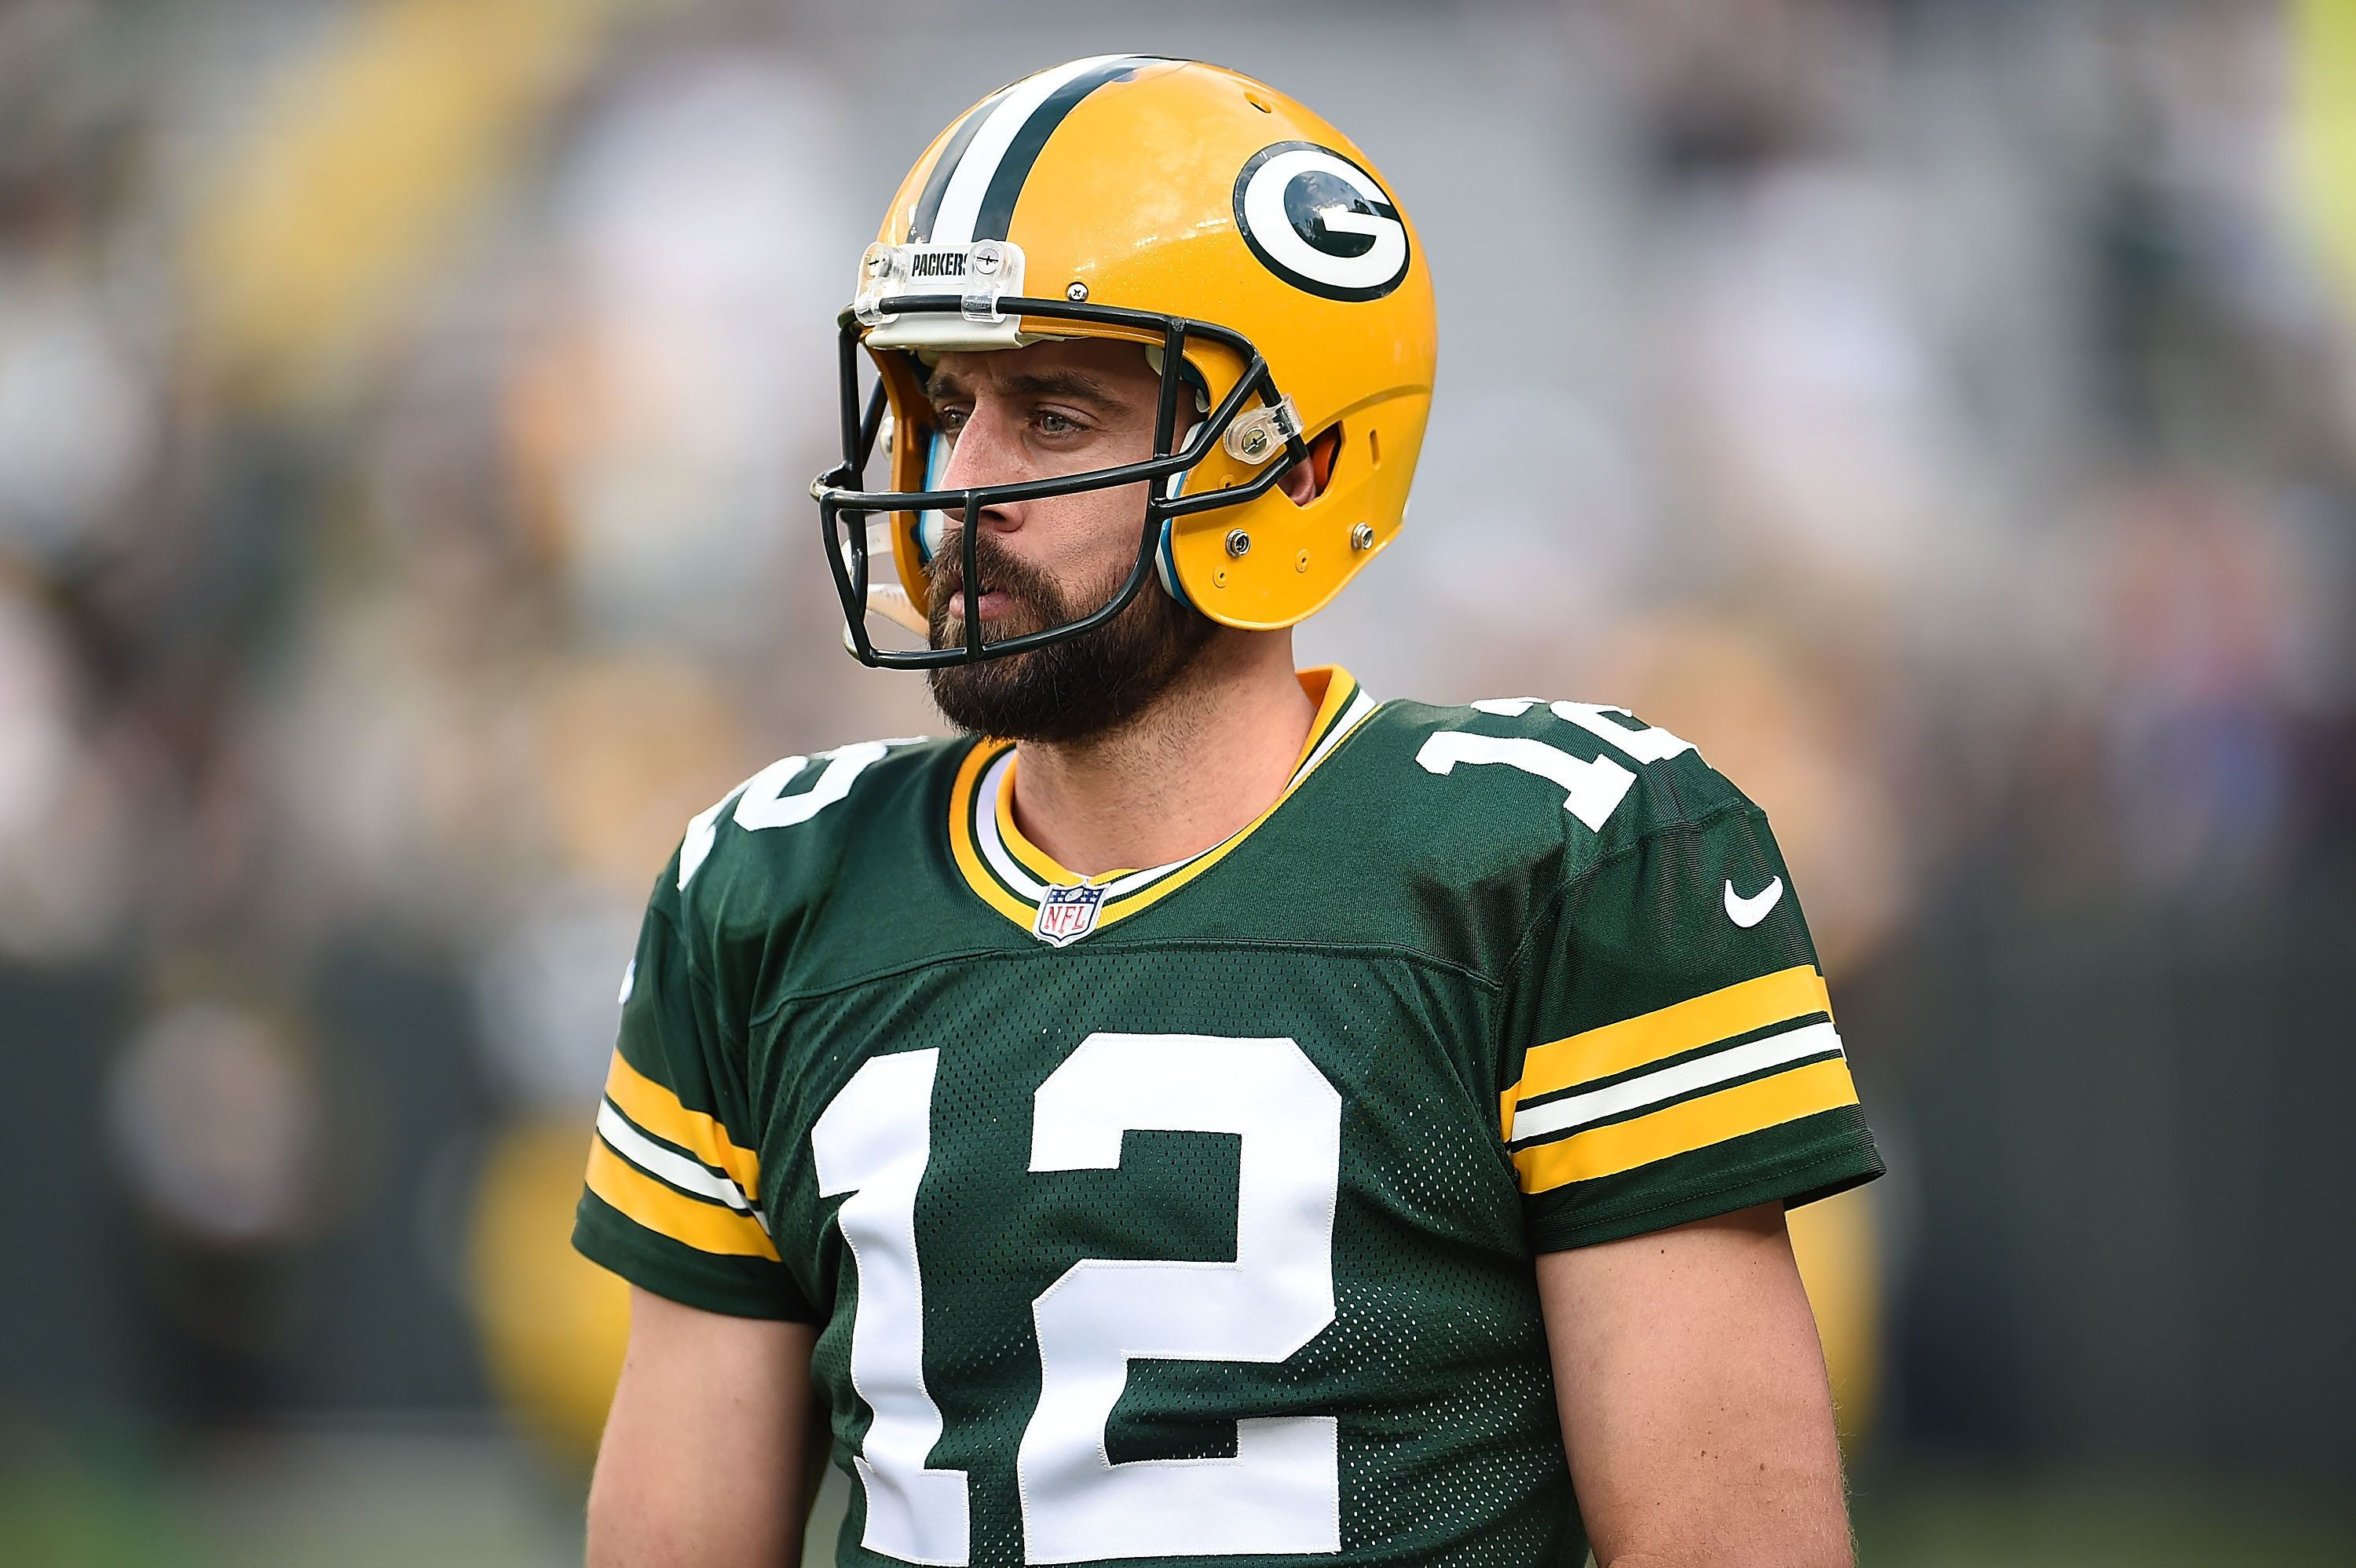 GREEN BAY, WI - AUGUST 10:  Aaron Rodgers #12 of the Green Bay Packers participates in warmups prior to a preseason game against the Philadelphia Eagles at Lambeau Field on August 10, 2017 in Green Bay, Wisconsin.  The Packers defeated the Eagles 24-9.  (Photo by Stacy Revere/Getty Images)